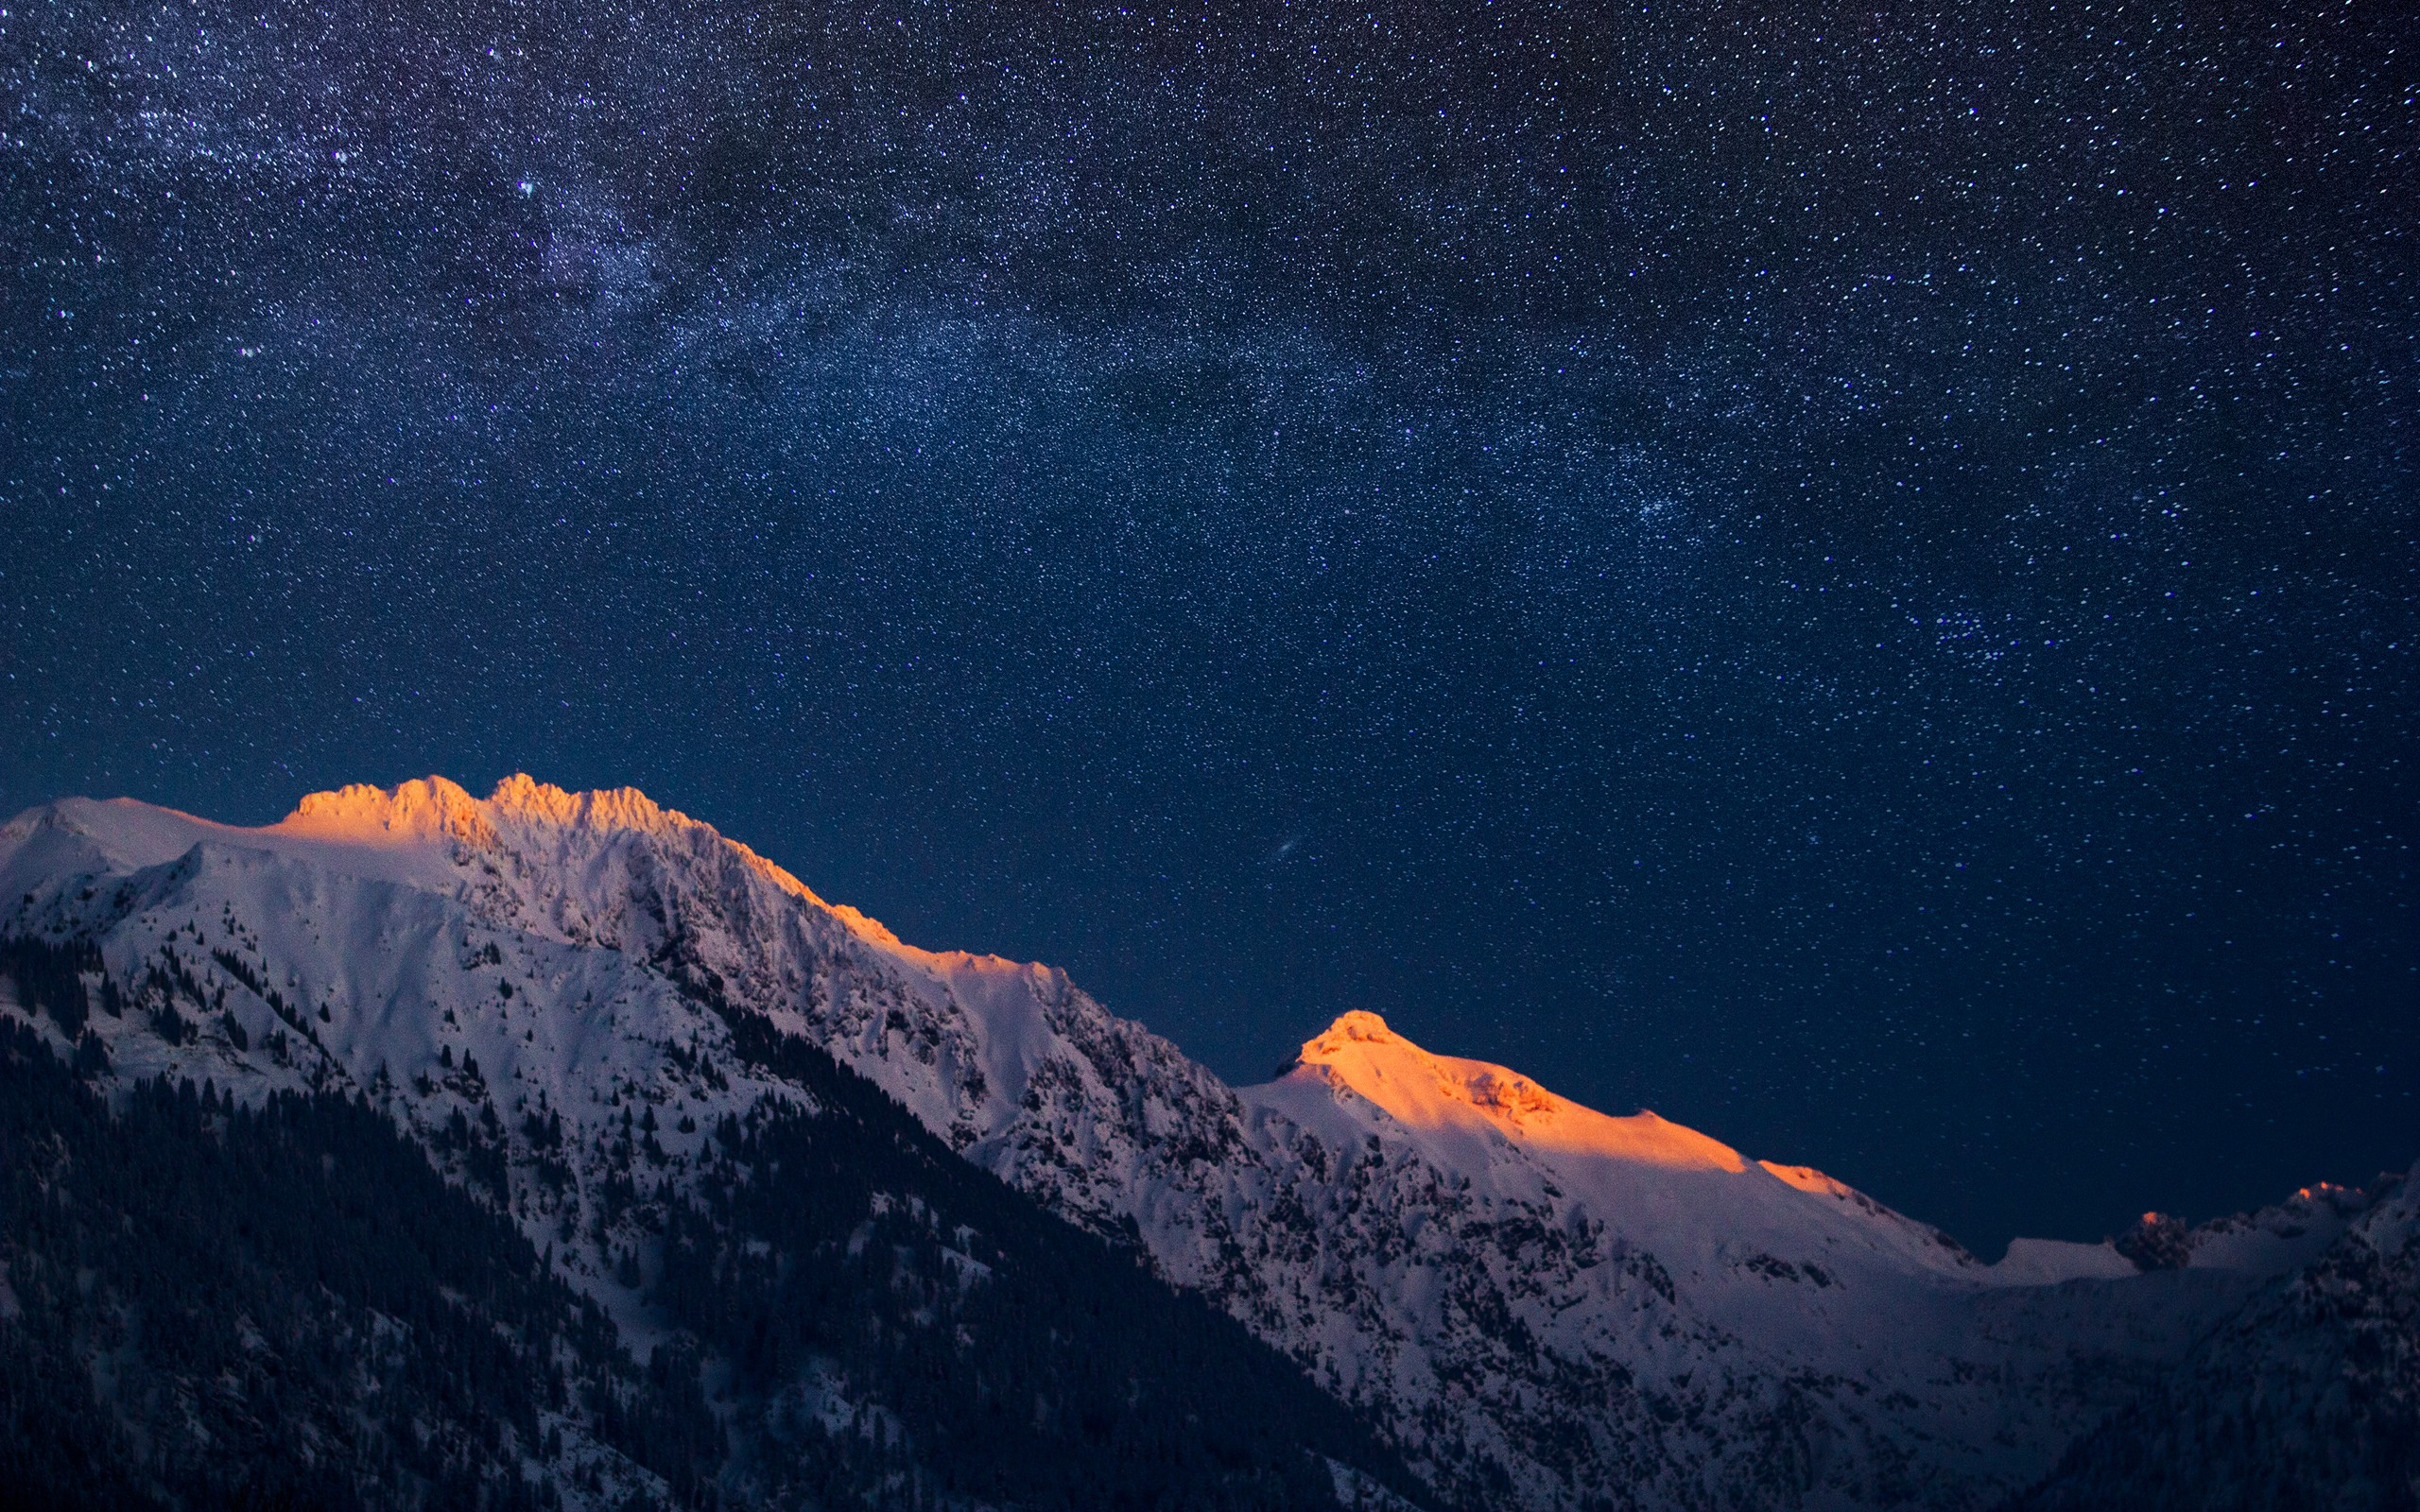 Mountains and a Night Sky HD Wallpaper Download HD Wallpapers 2560x1600